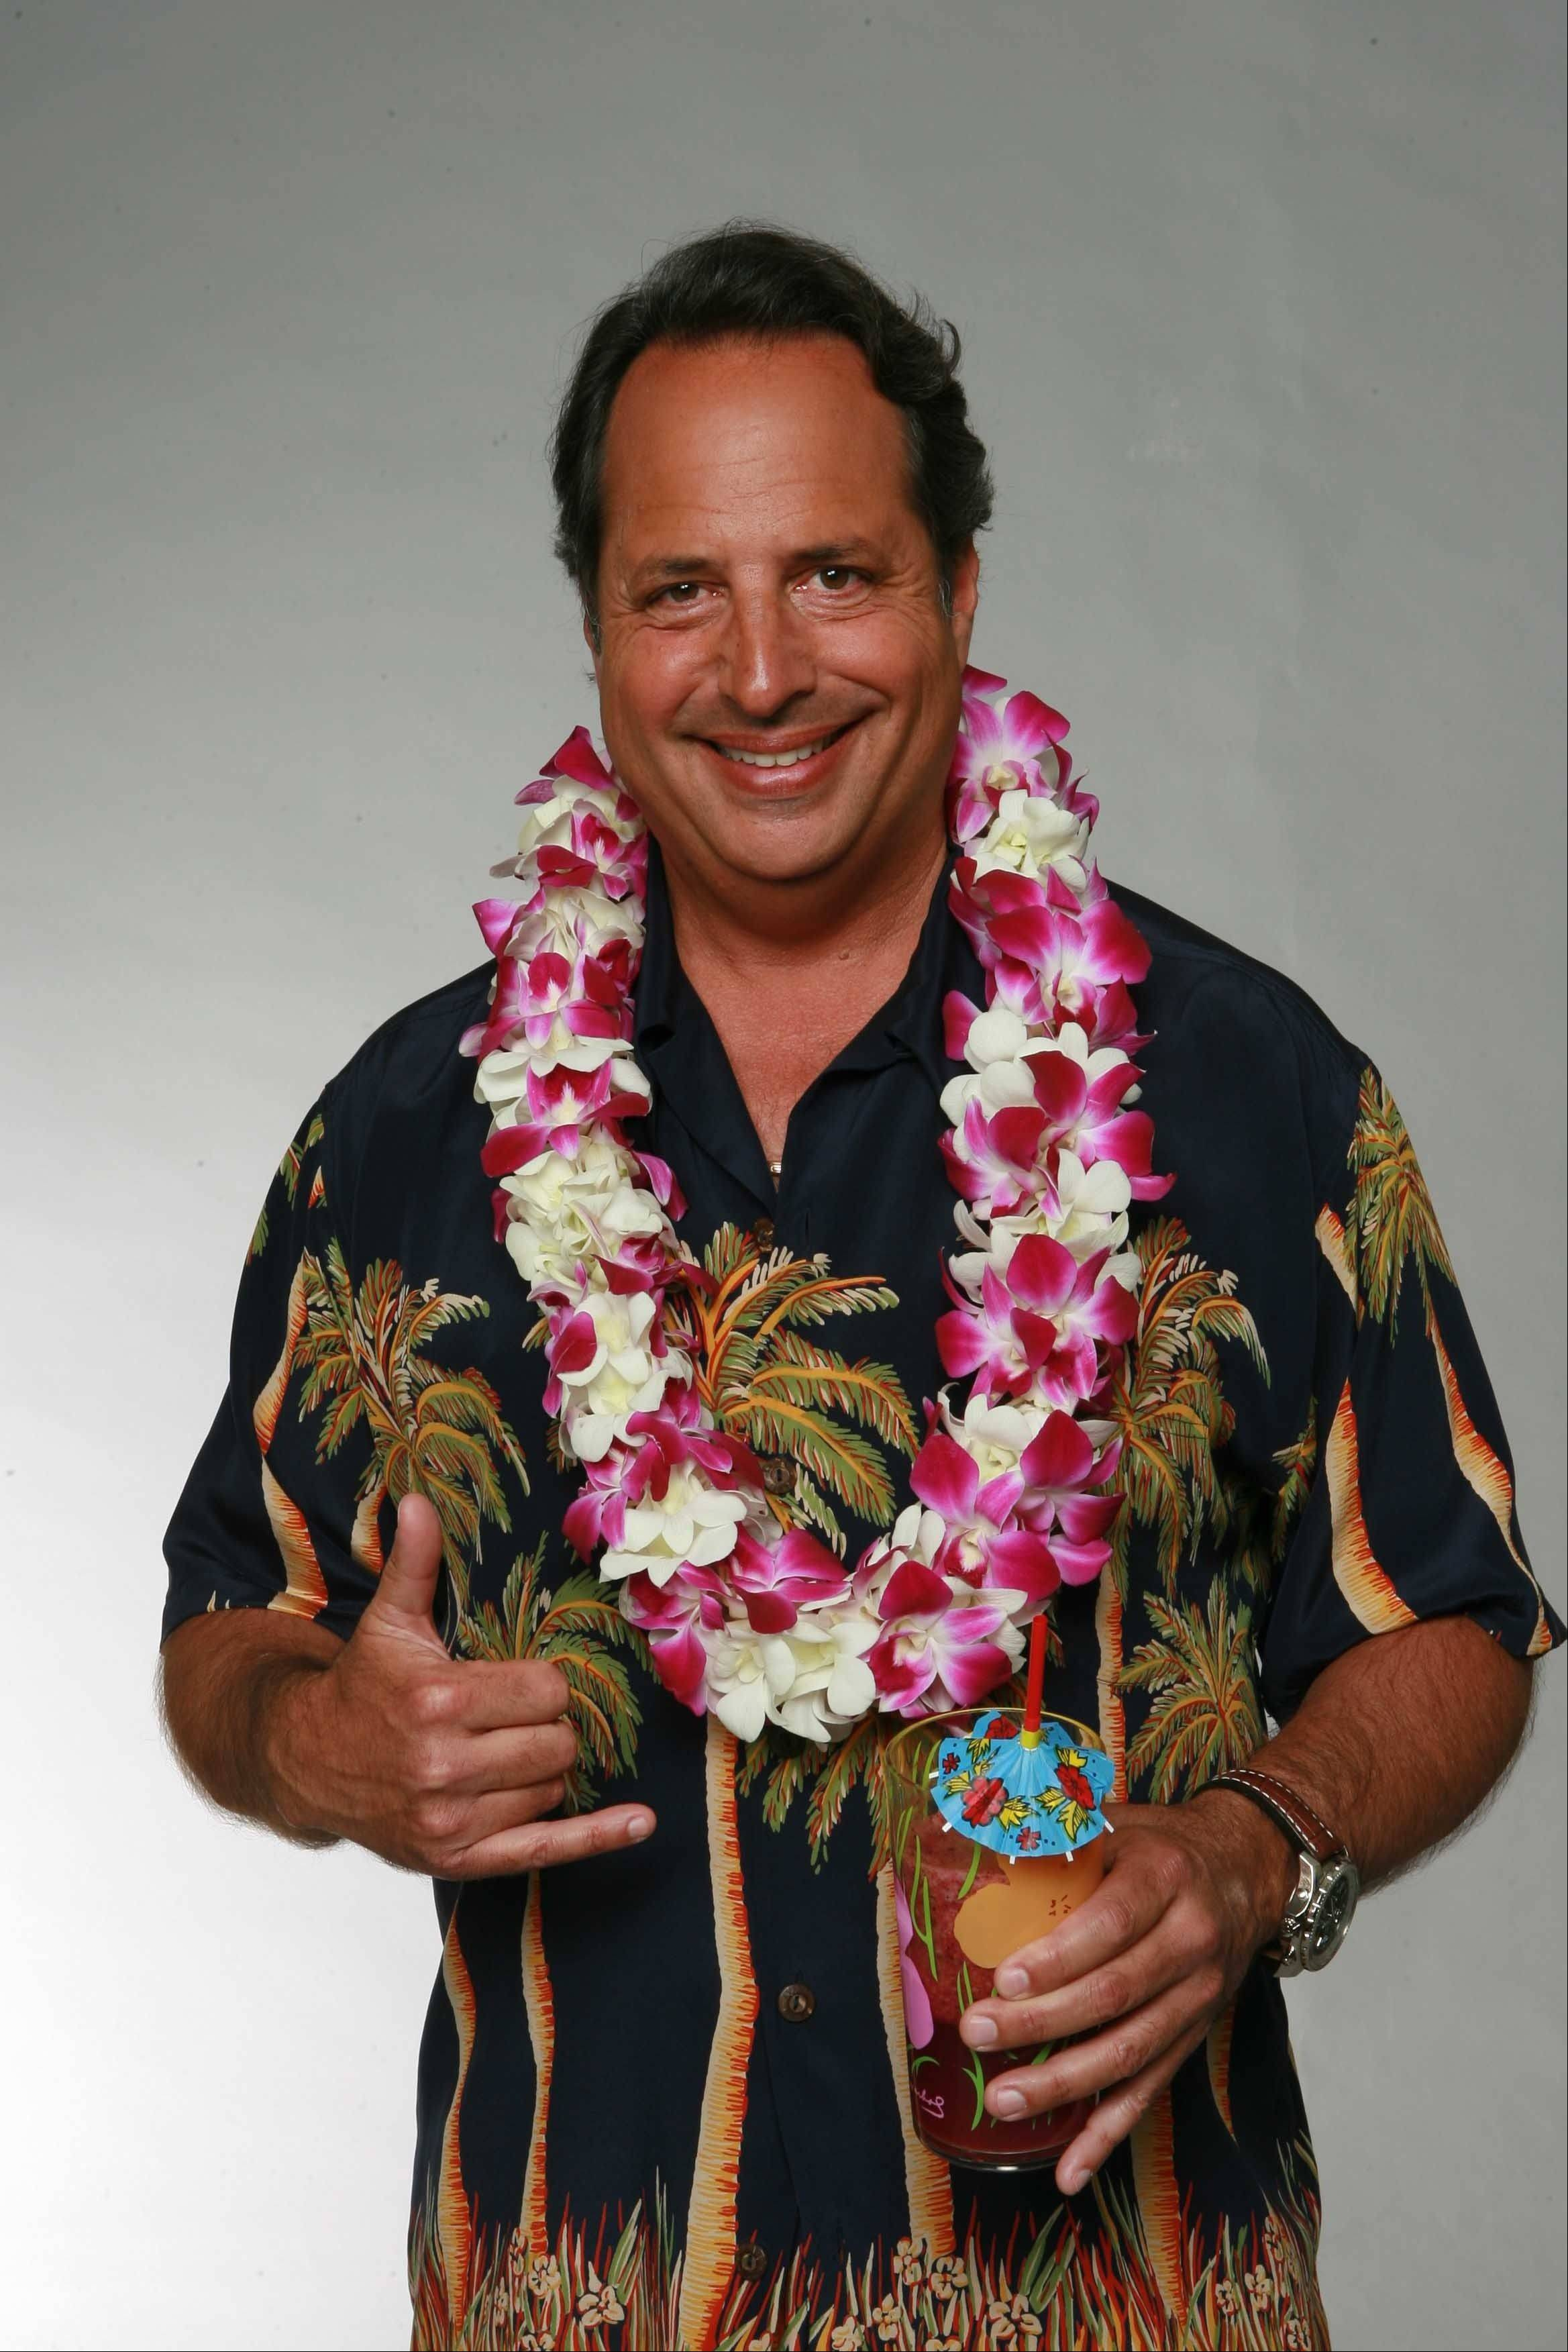 Comedian Jon Lovitz performs at the Improv Comedy Showcase in Schaumburg Friday through Sunday, Aug. 31-Sept. 2.